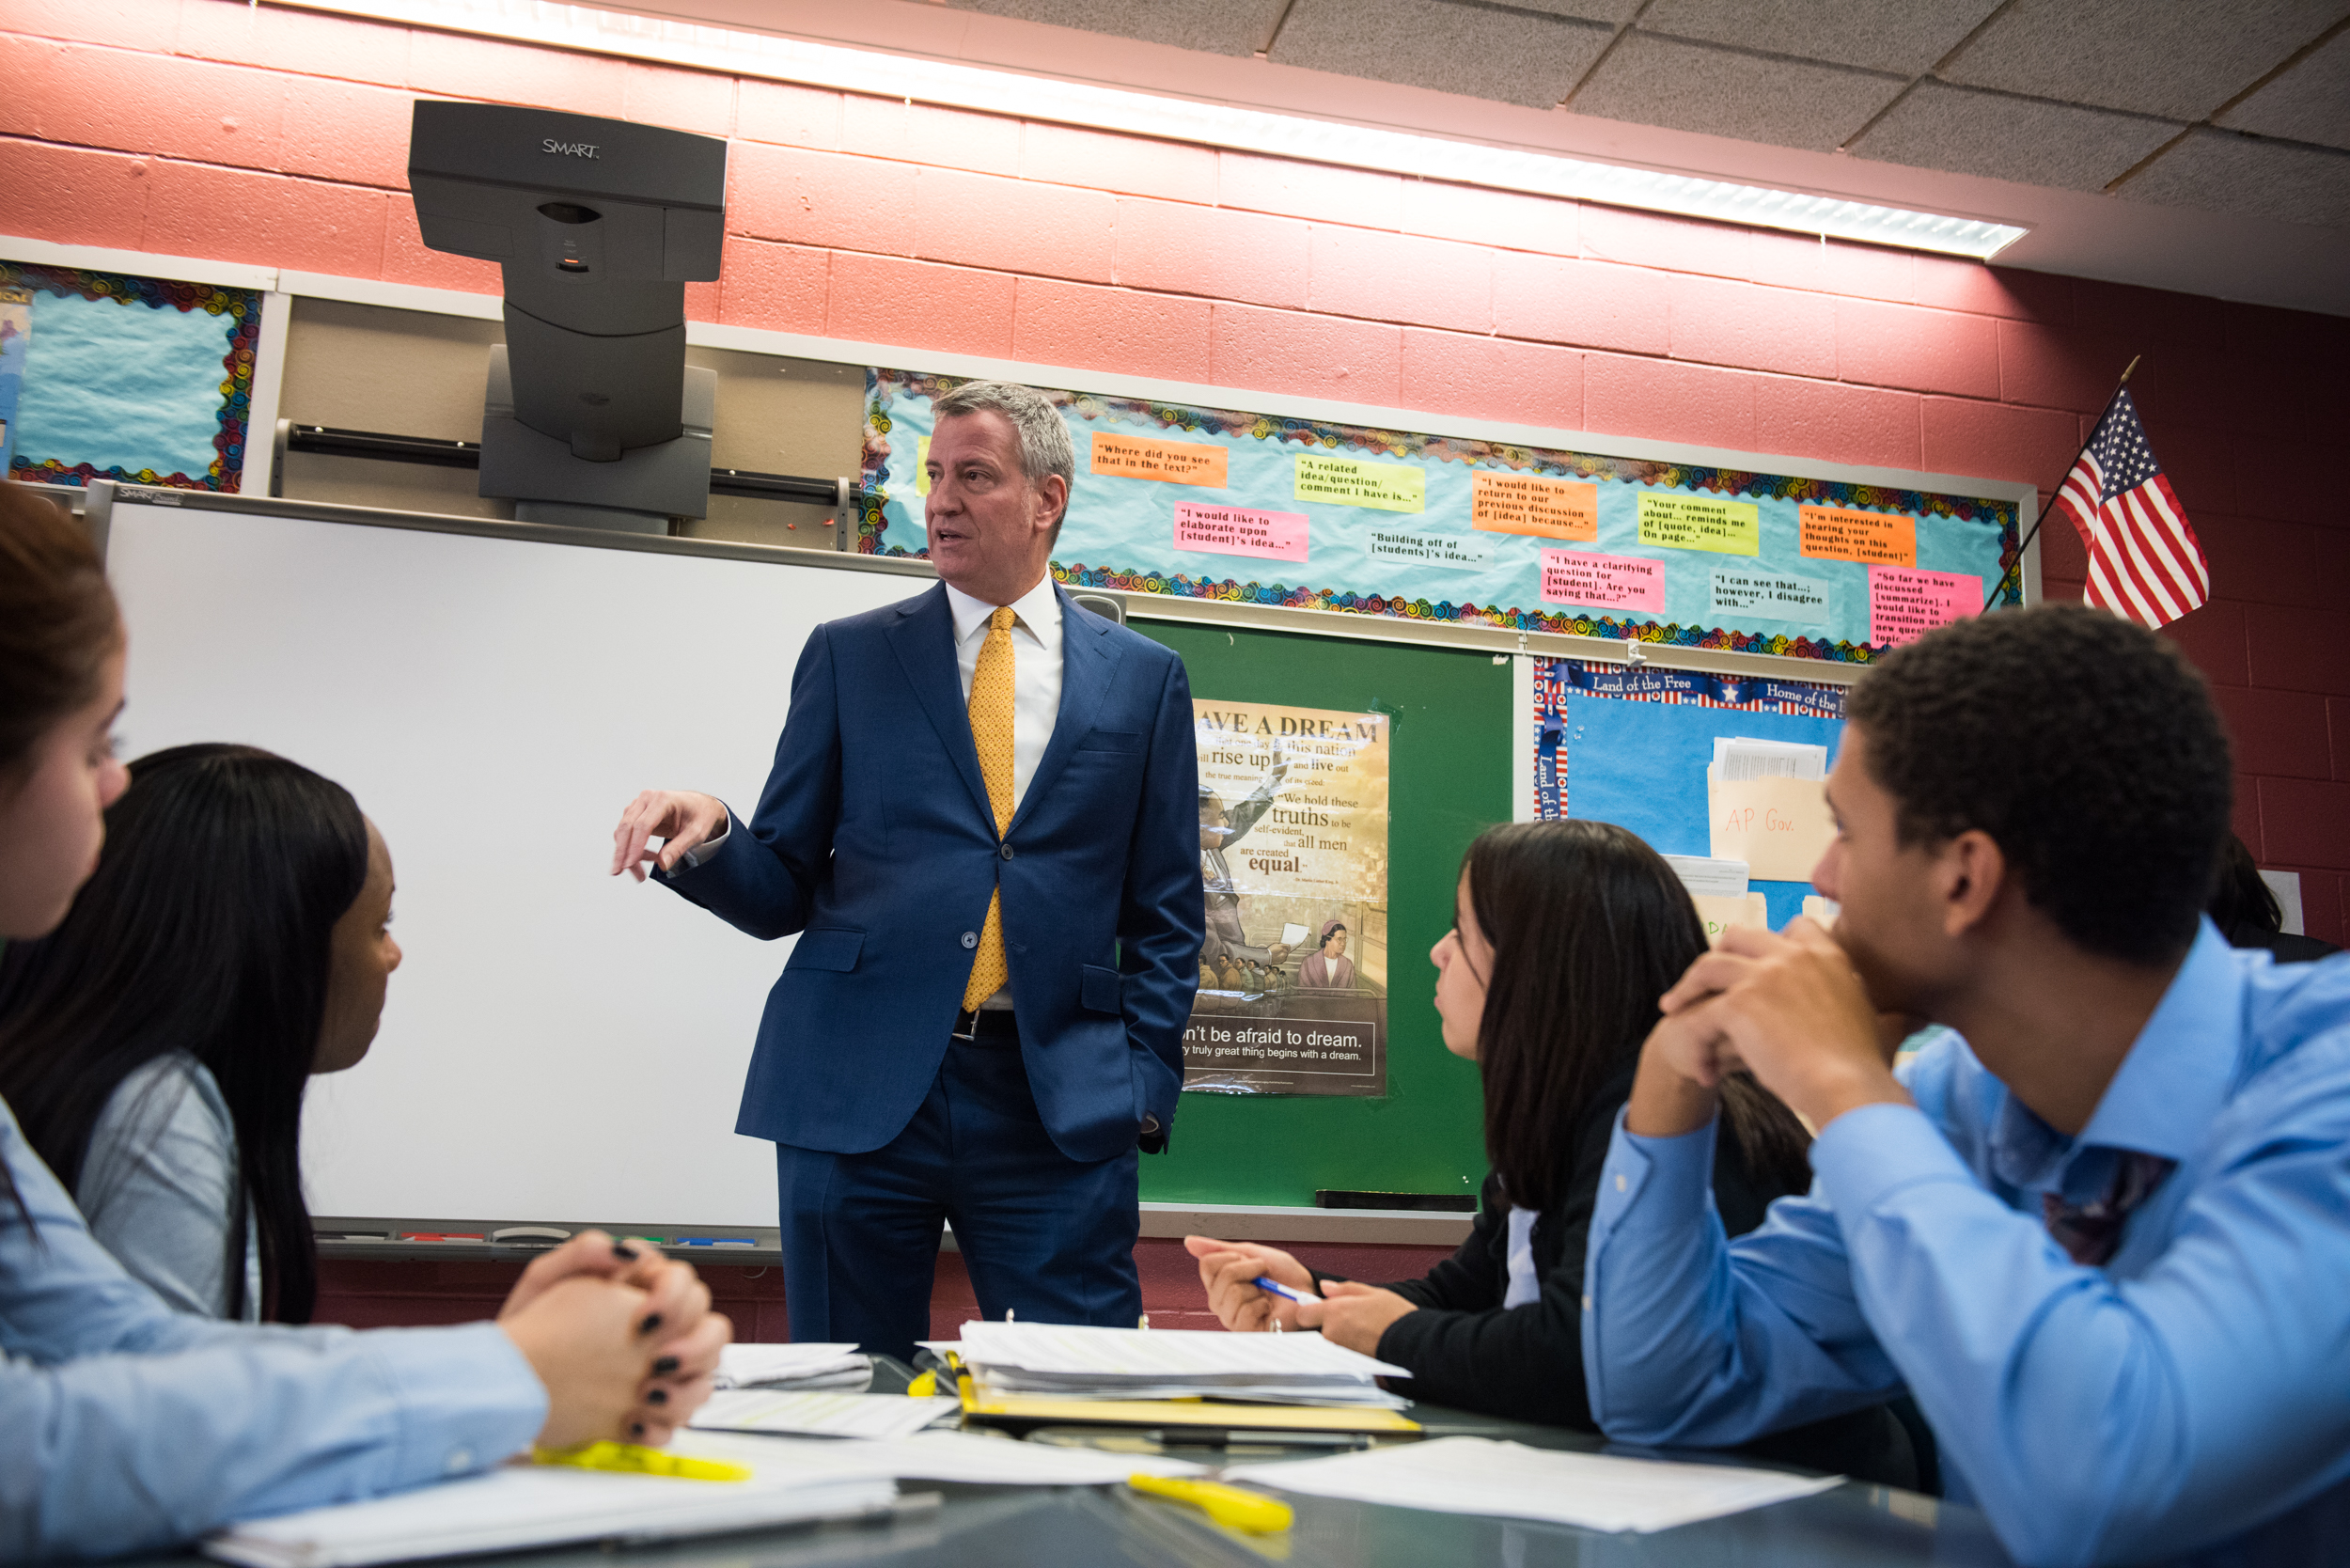 New York City Mayor Bill de Blasio speaks at the Bronx School for Law, Government, and Justice in 2017.